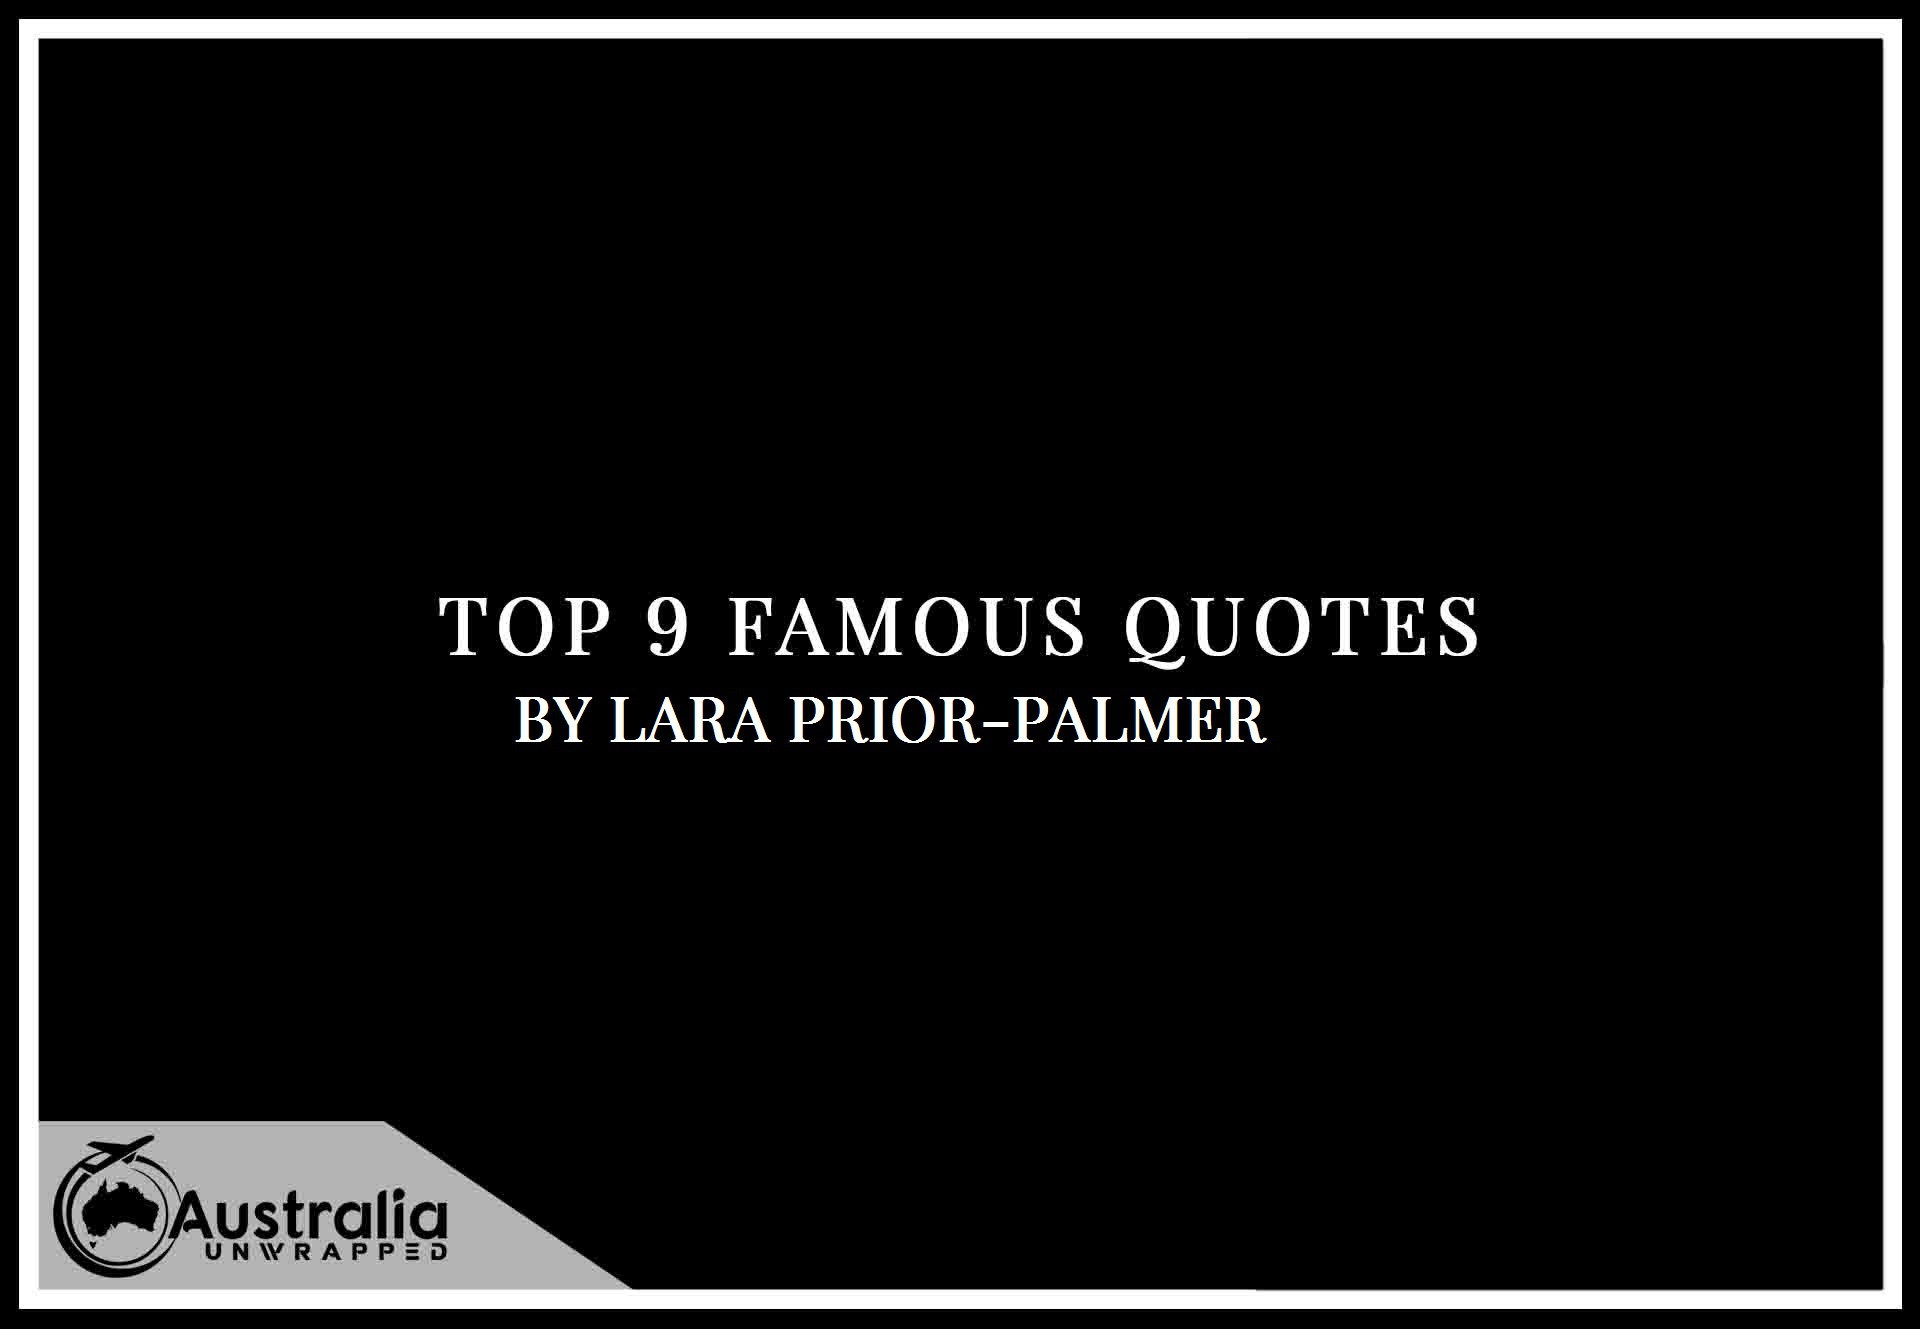 Lara Prior-Palmer's Top 9 Popular and Famous Quotes